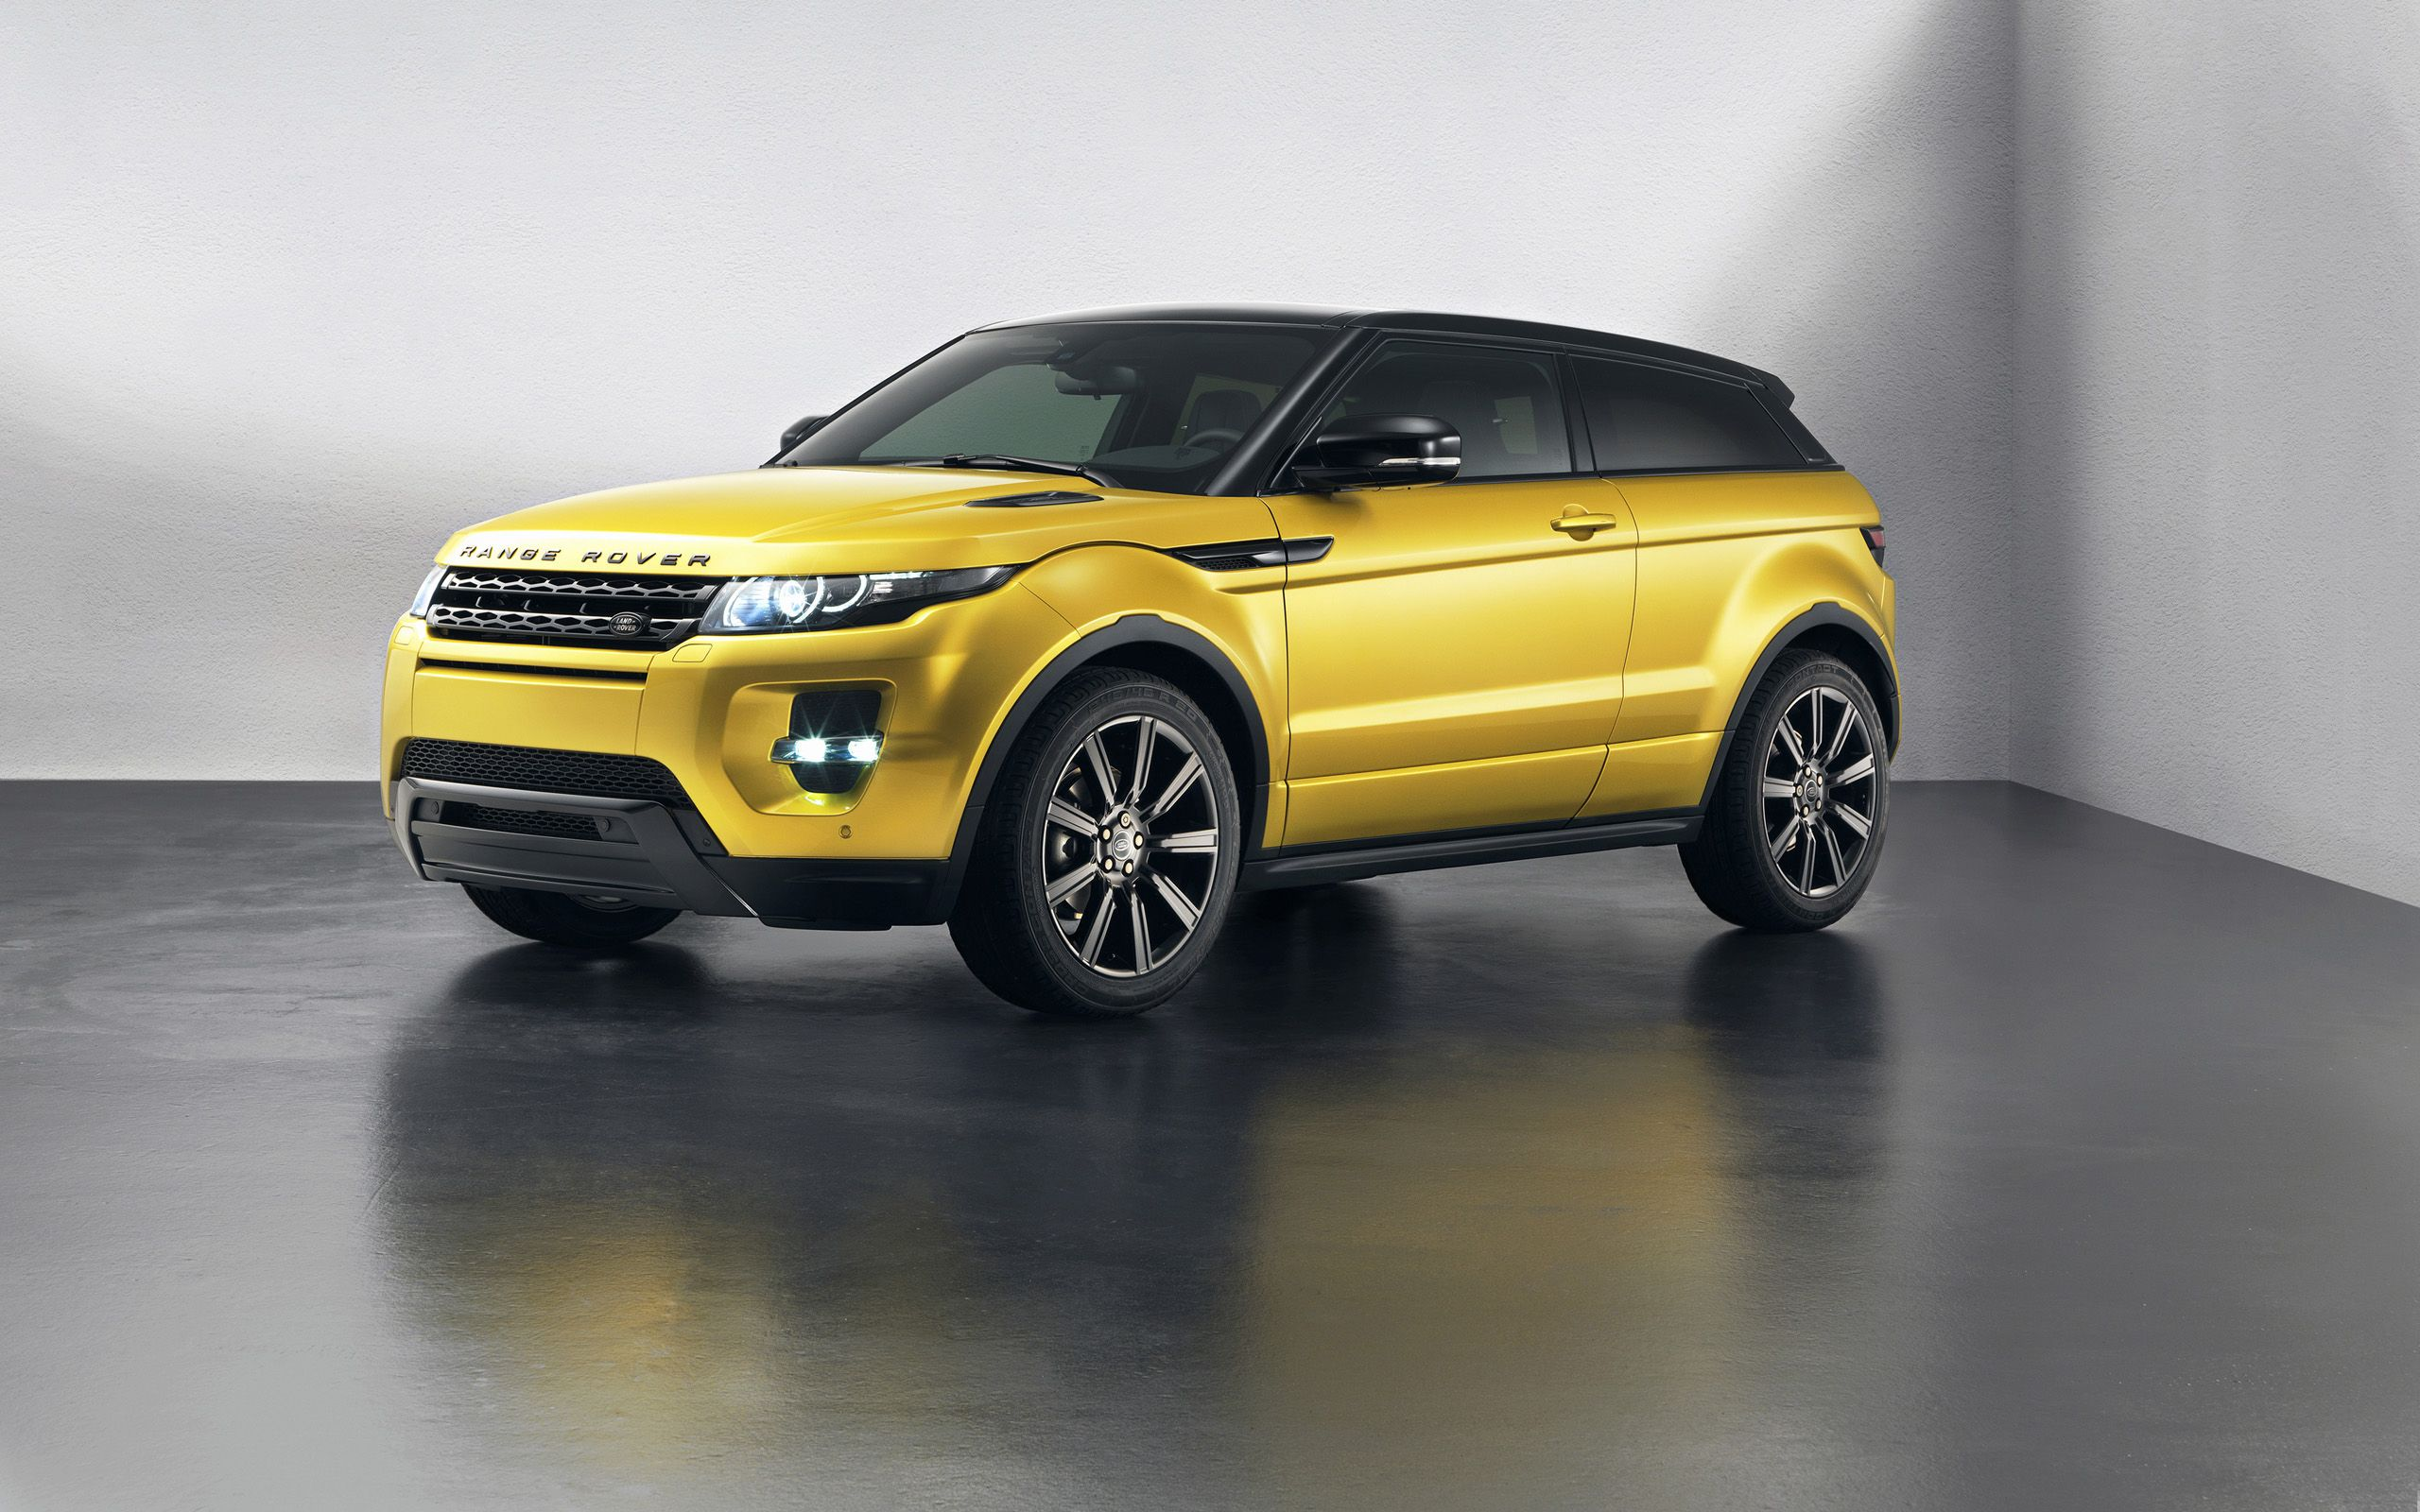 Wallpapers of range rover evoque http hdcarwallfx com wallpapers of range rover evoque cool car wallpapers pinterest range rovers car wallpapers